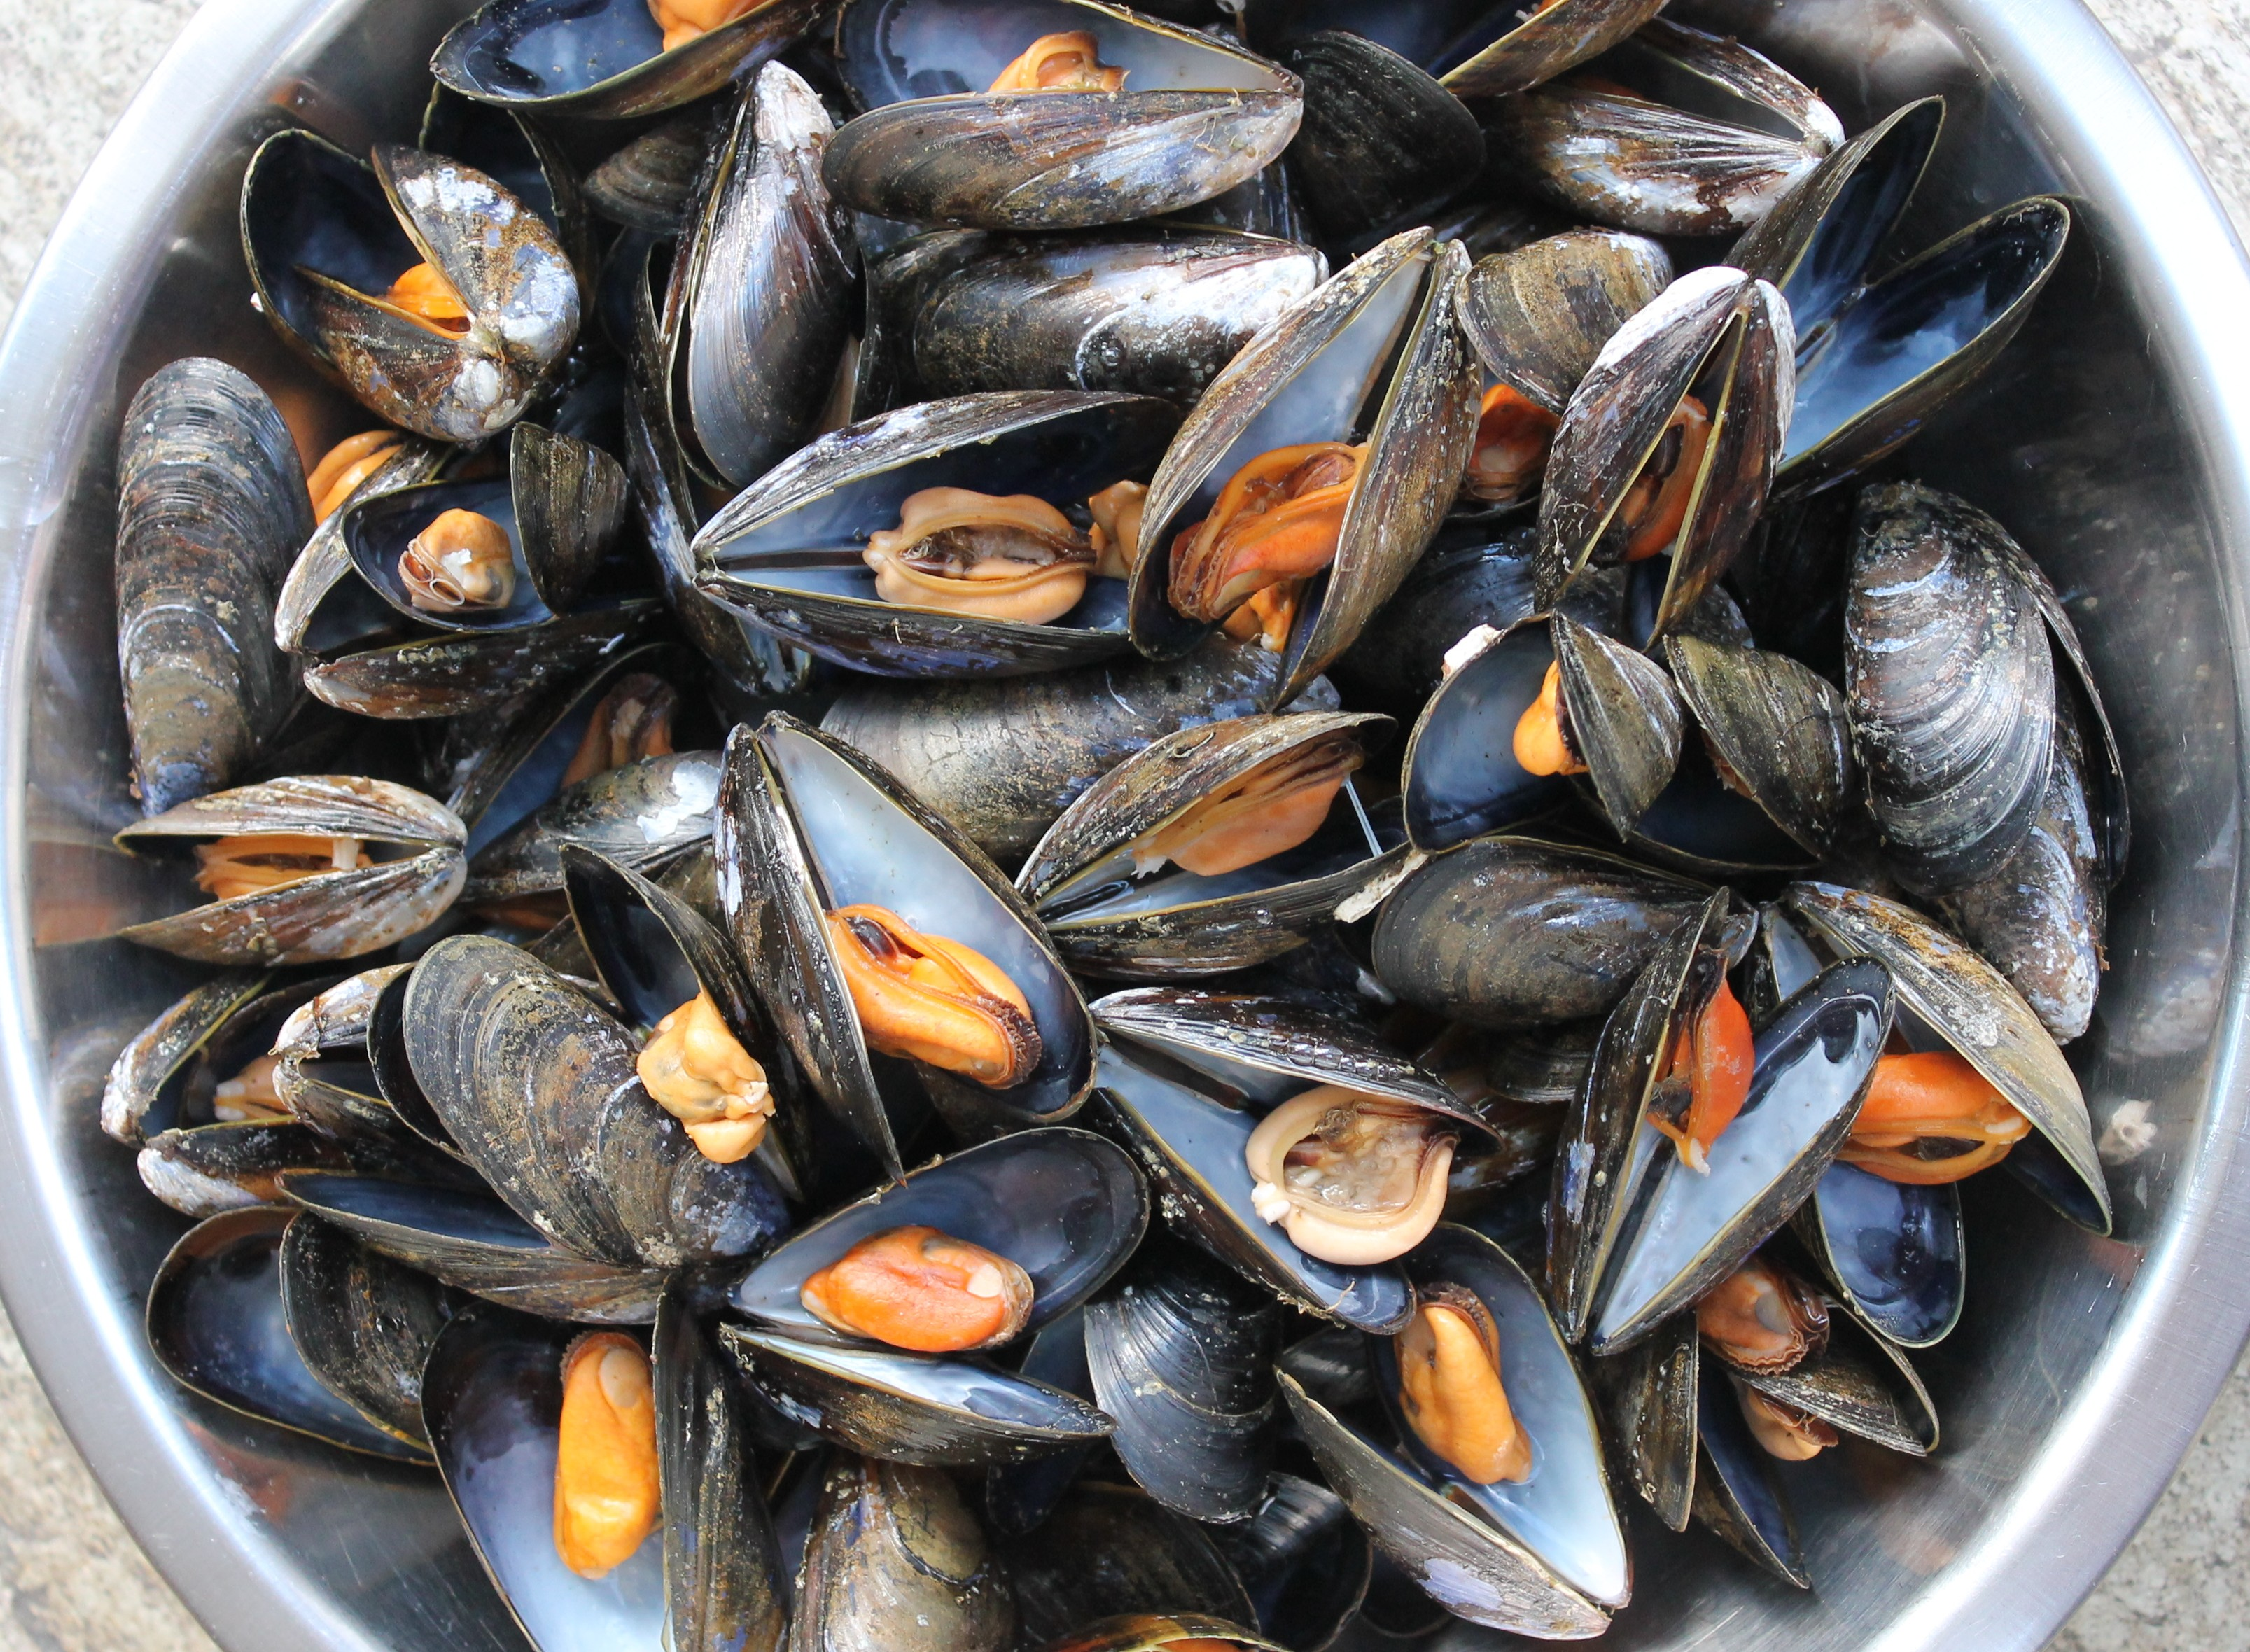 Shellfish & Seafood masterclasses, Sat 27th & Sun 28th Feb 2016